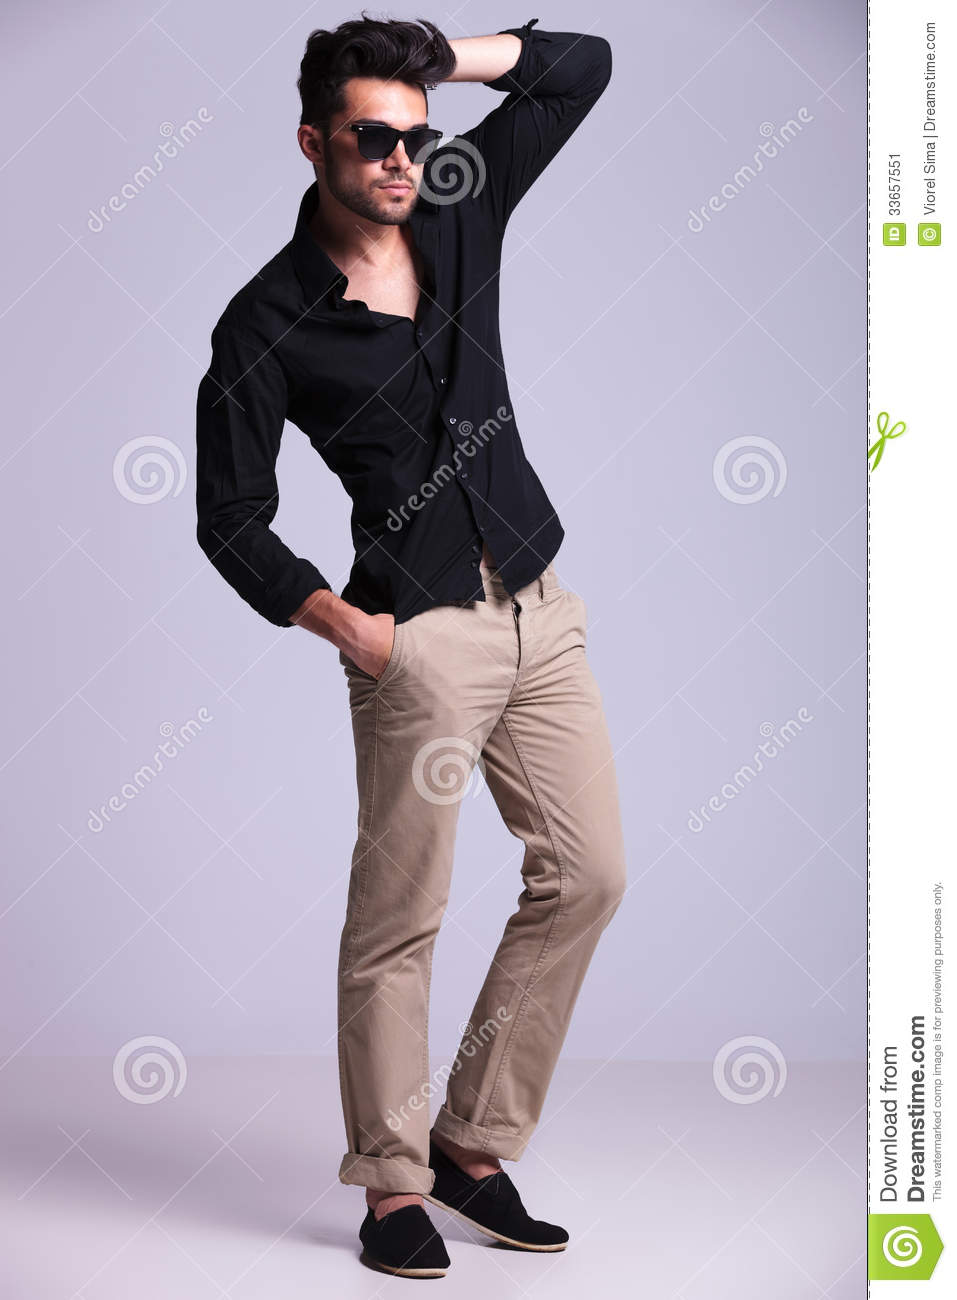 Young Fashion Man Poses With Hand In Hair Stock Image